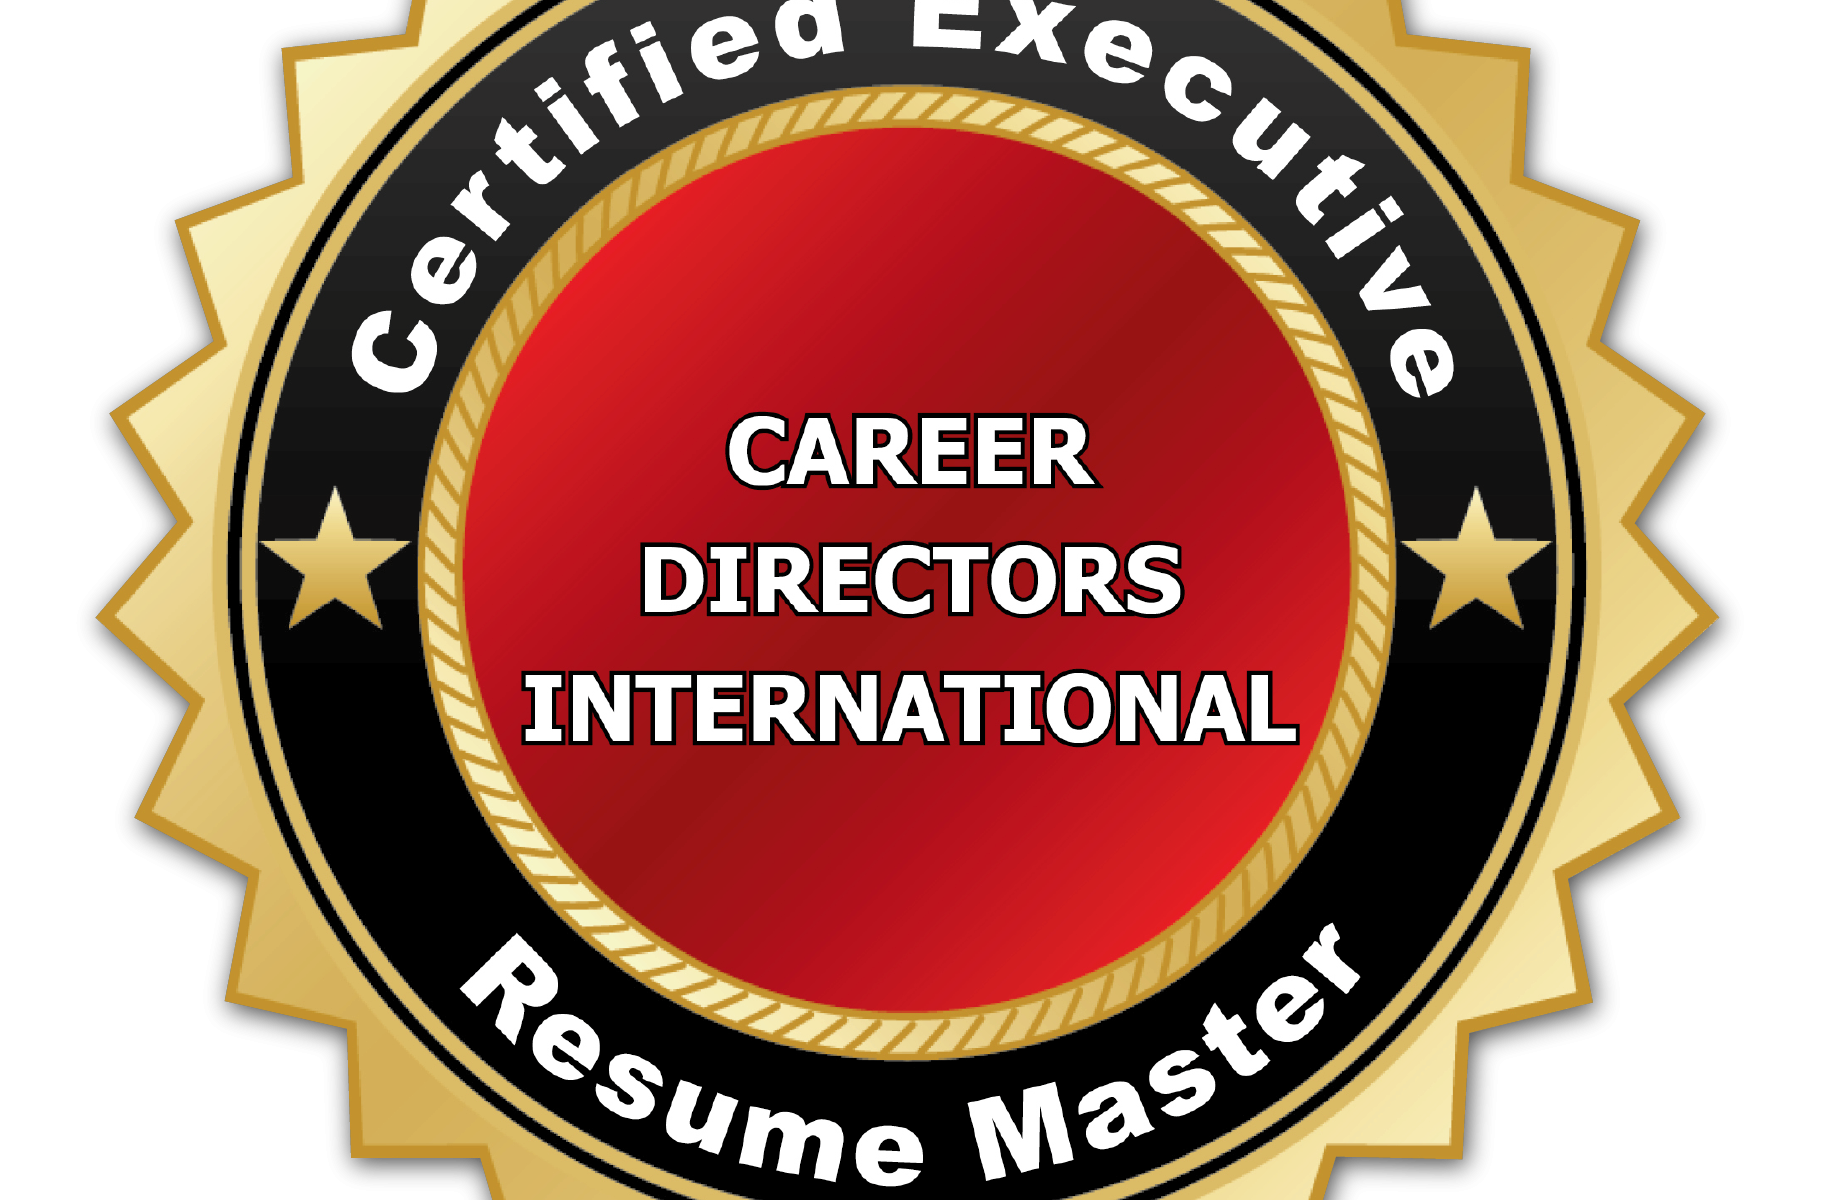 Certified Executive Resume Master